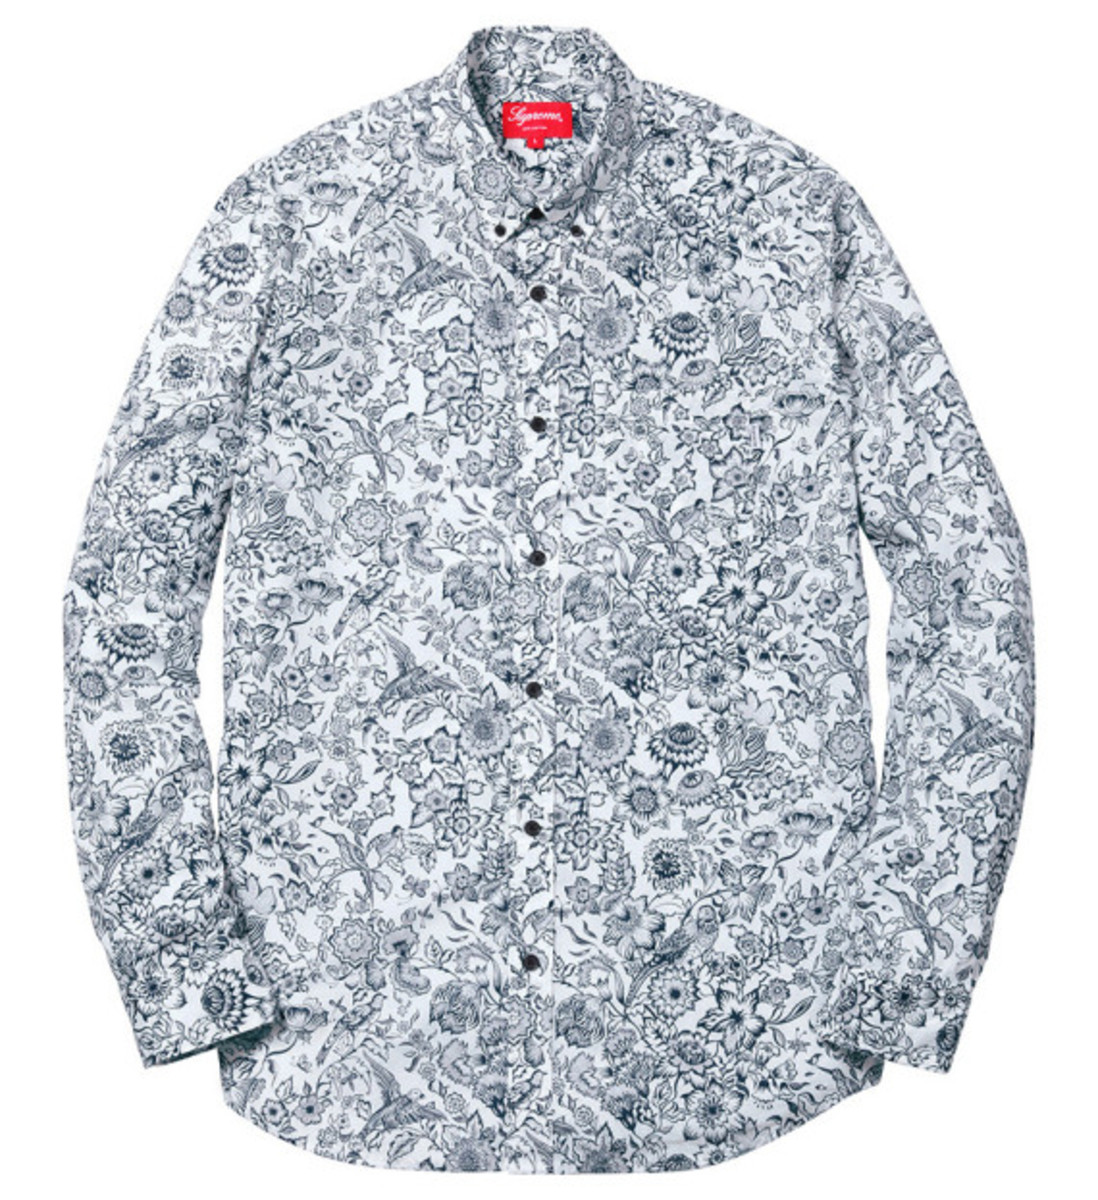 supreme-liberty-spring-summer-2014-collaboration-collection-02